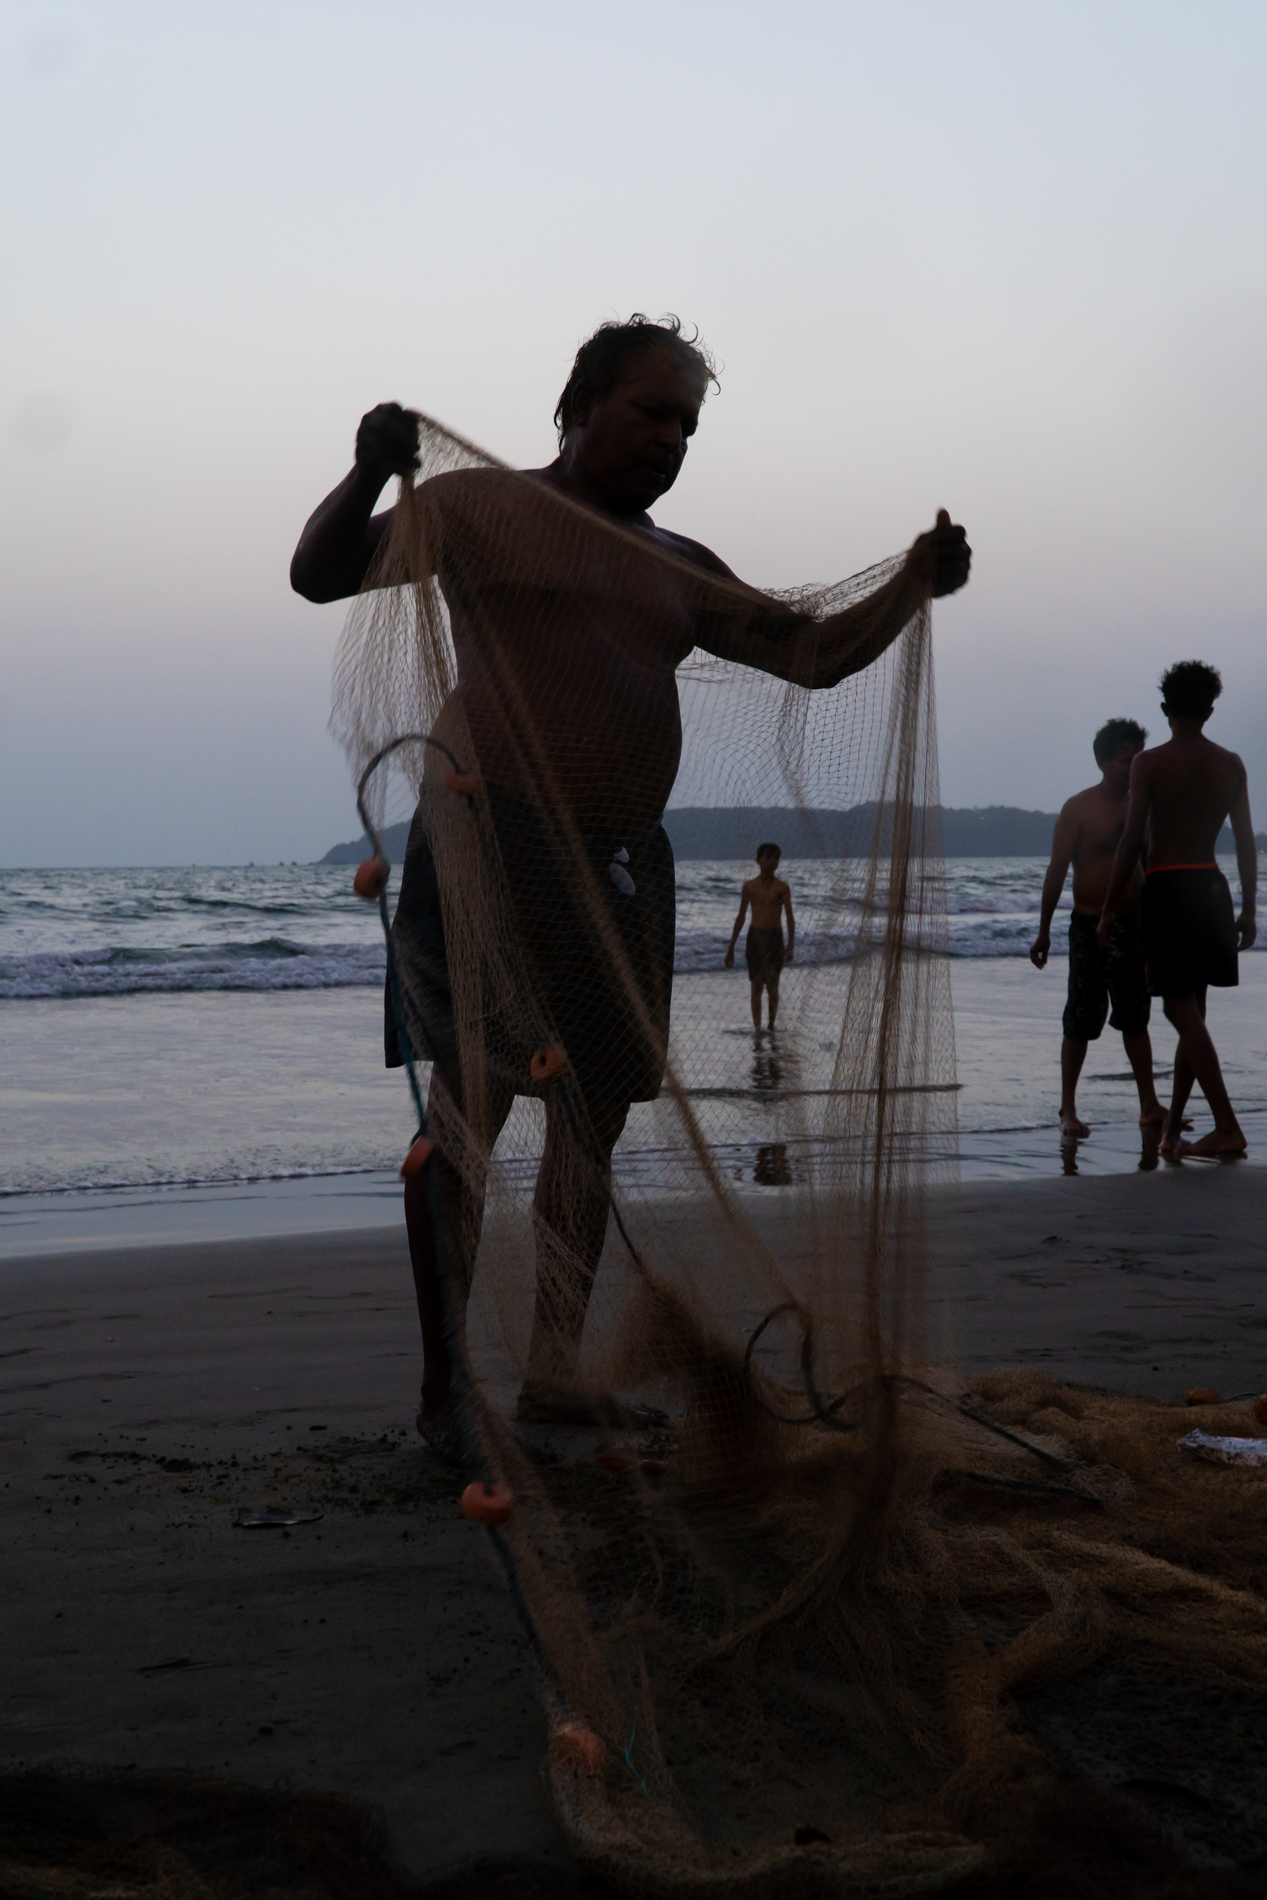 After fishing, this fisherman was  folding his net together, when i noticed the person in background. It seemed that the fisherman had caught the human which was interesting for me.